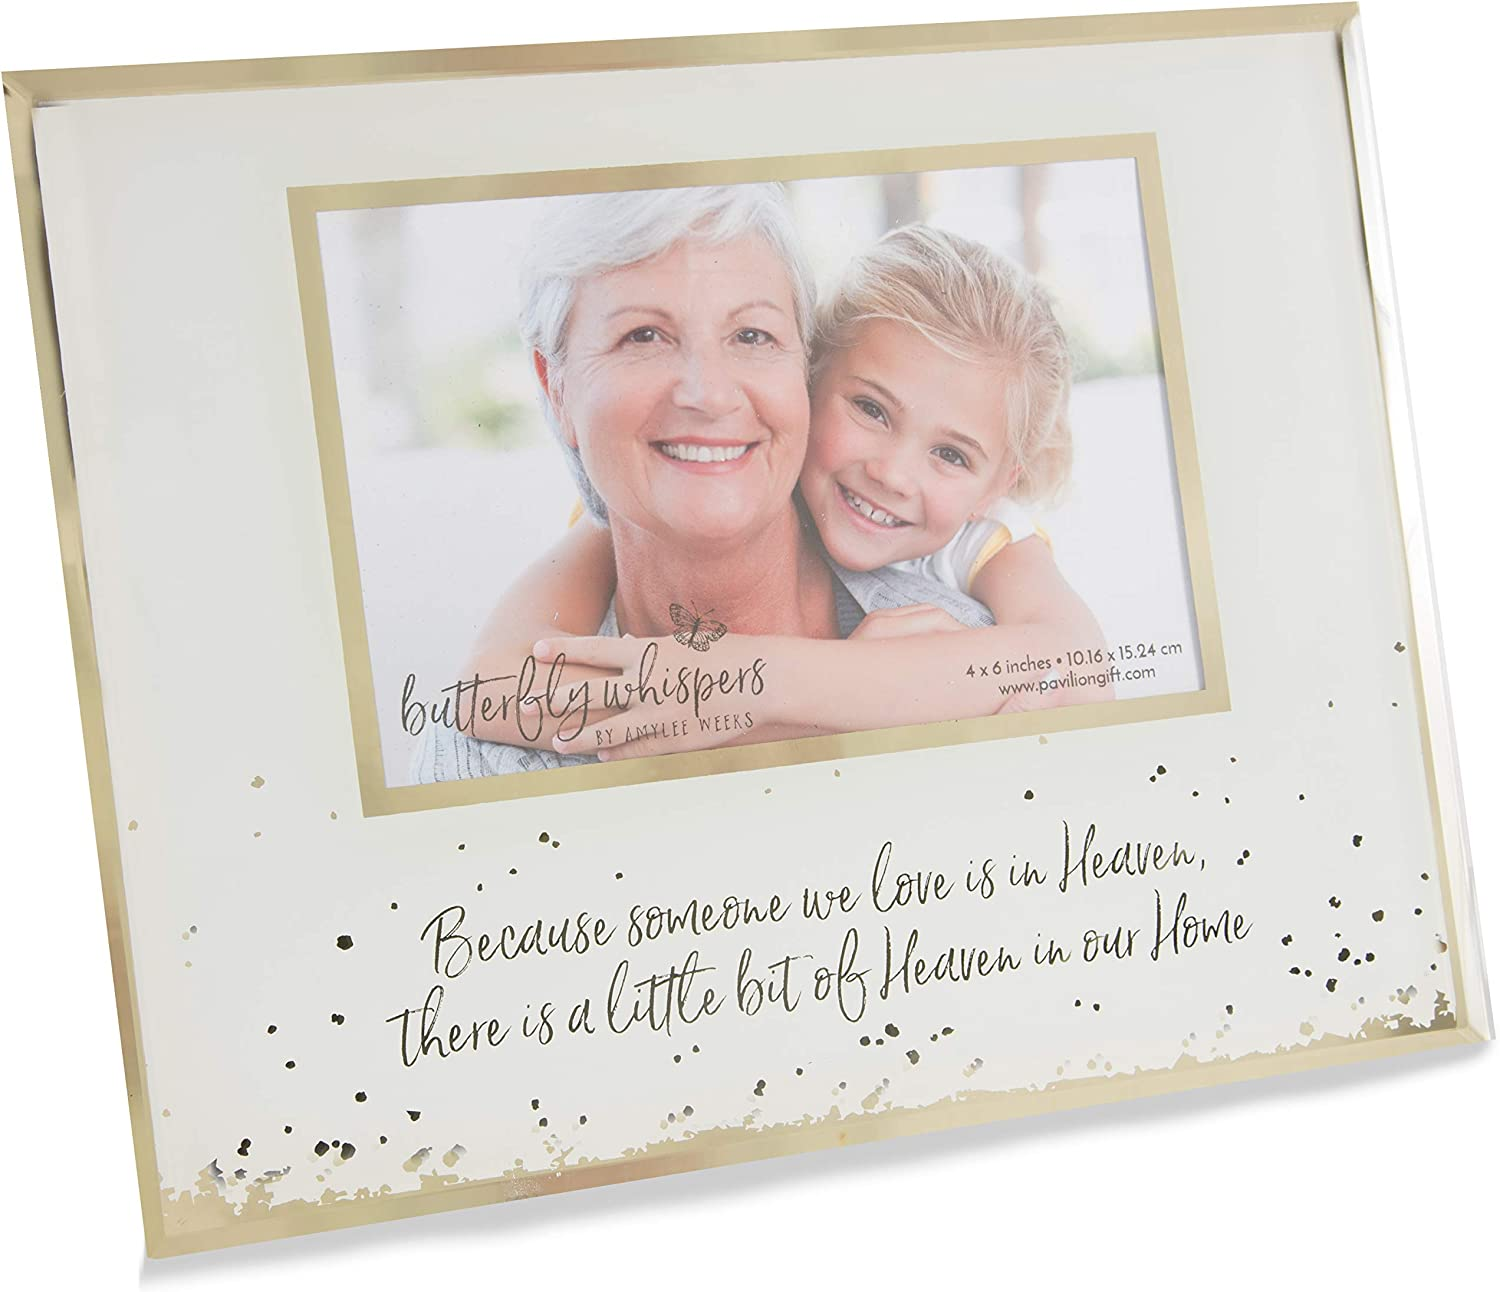 Pavilion Gift Company Pavilion-Little Bit of Heaven in Our Home-Gold & White 4x6 in Memory Picture Frame, 4x6 inch, Gold